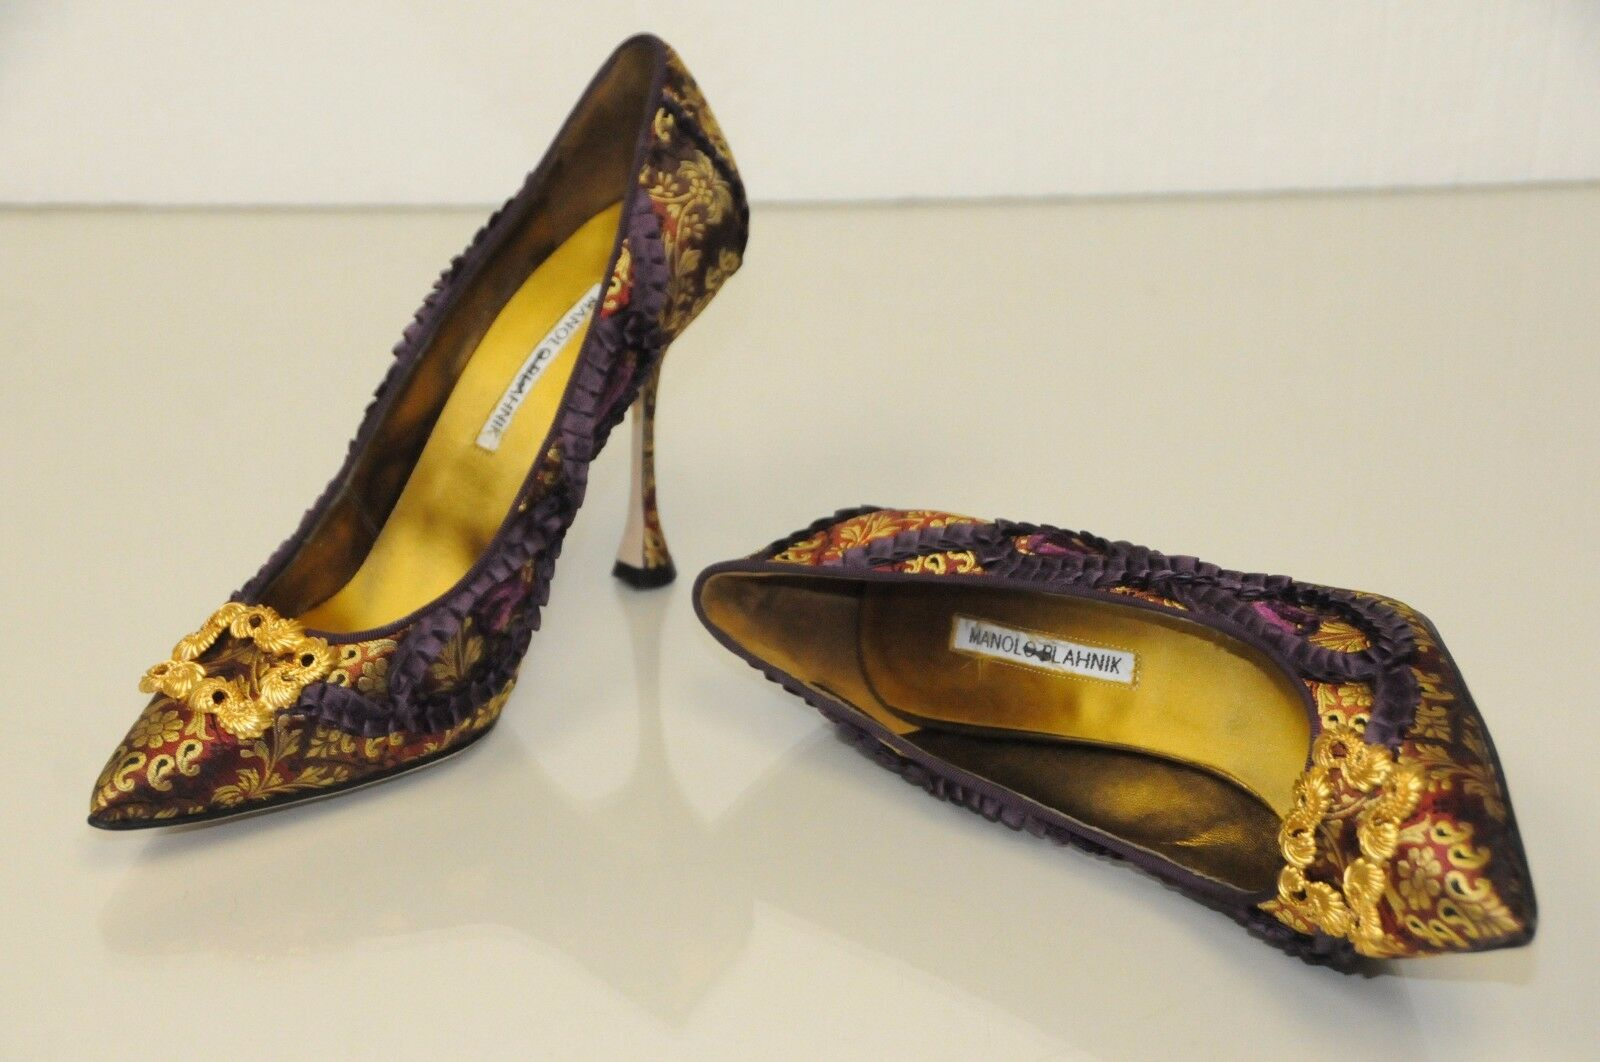 1235 New lila Manolo Blahnik TRADI Gold brocade lila New Jeweled schuhe Pumps 40 41 268ac1